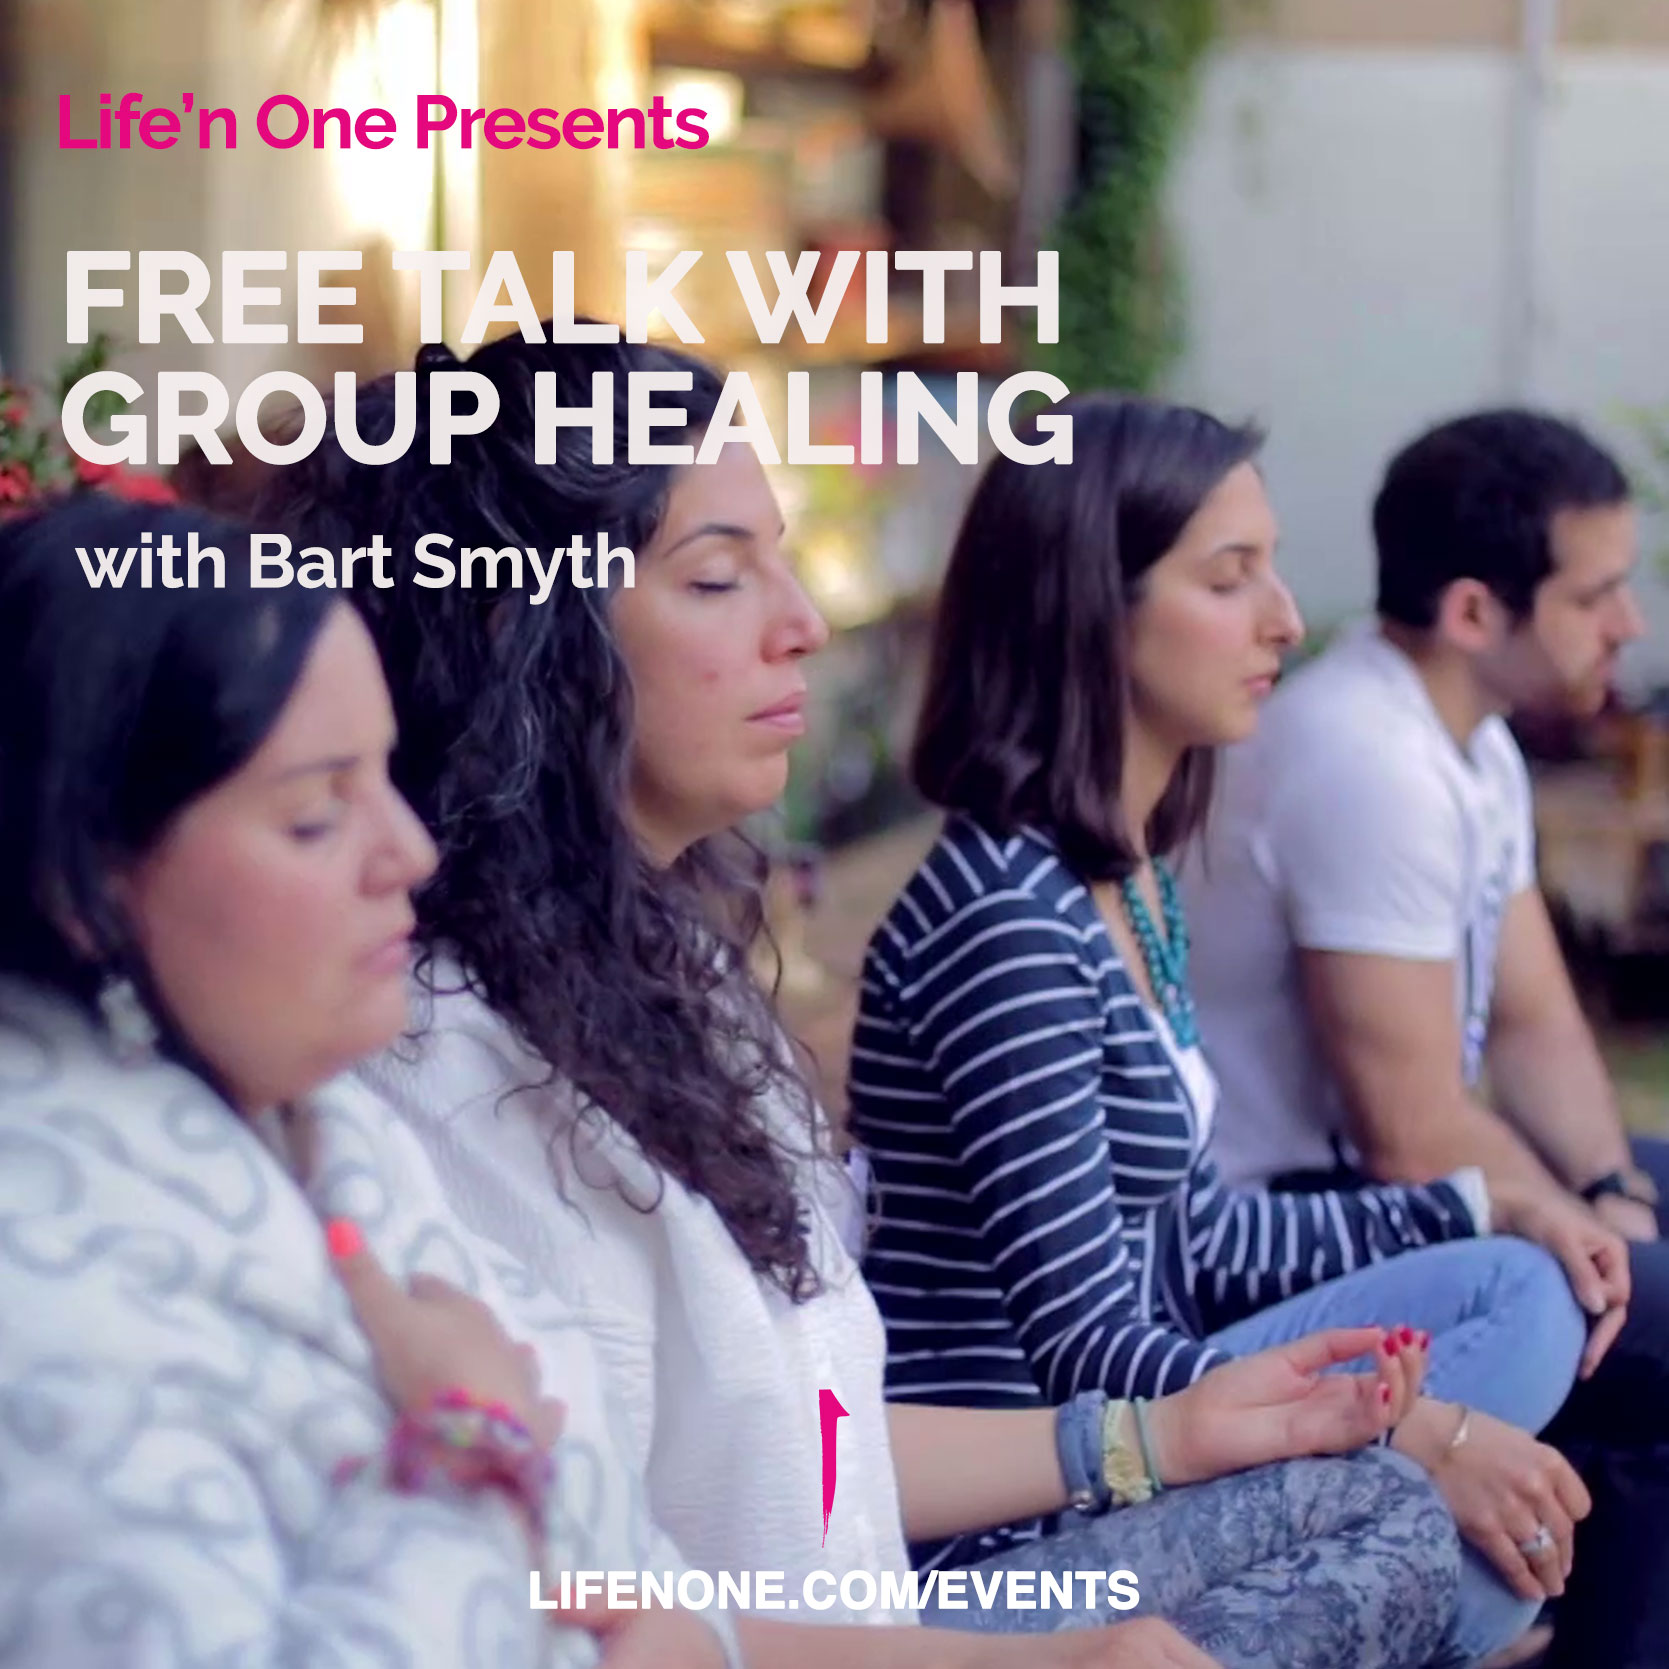 191119-free-talk-with-group-healing-with-bart-smyth-flyer.jpg